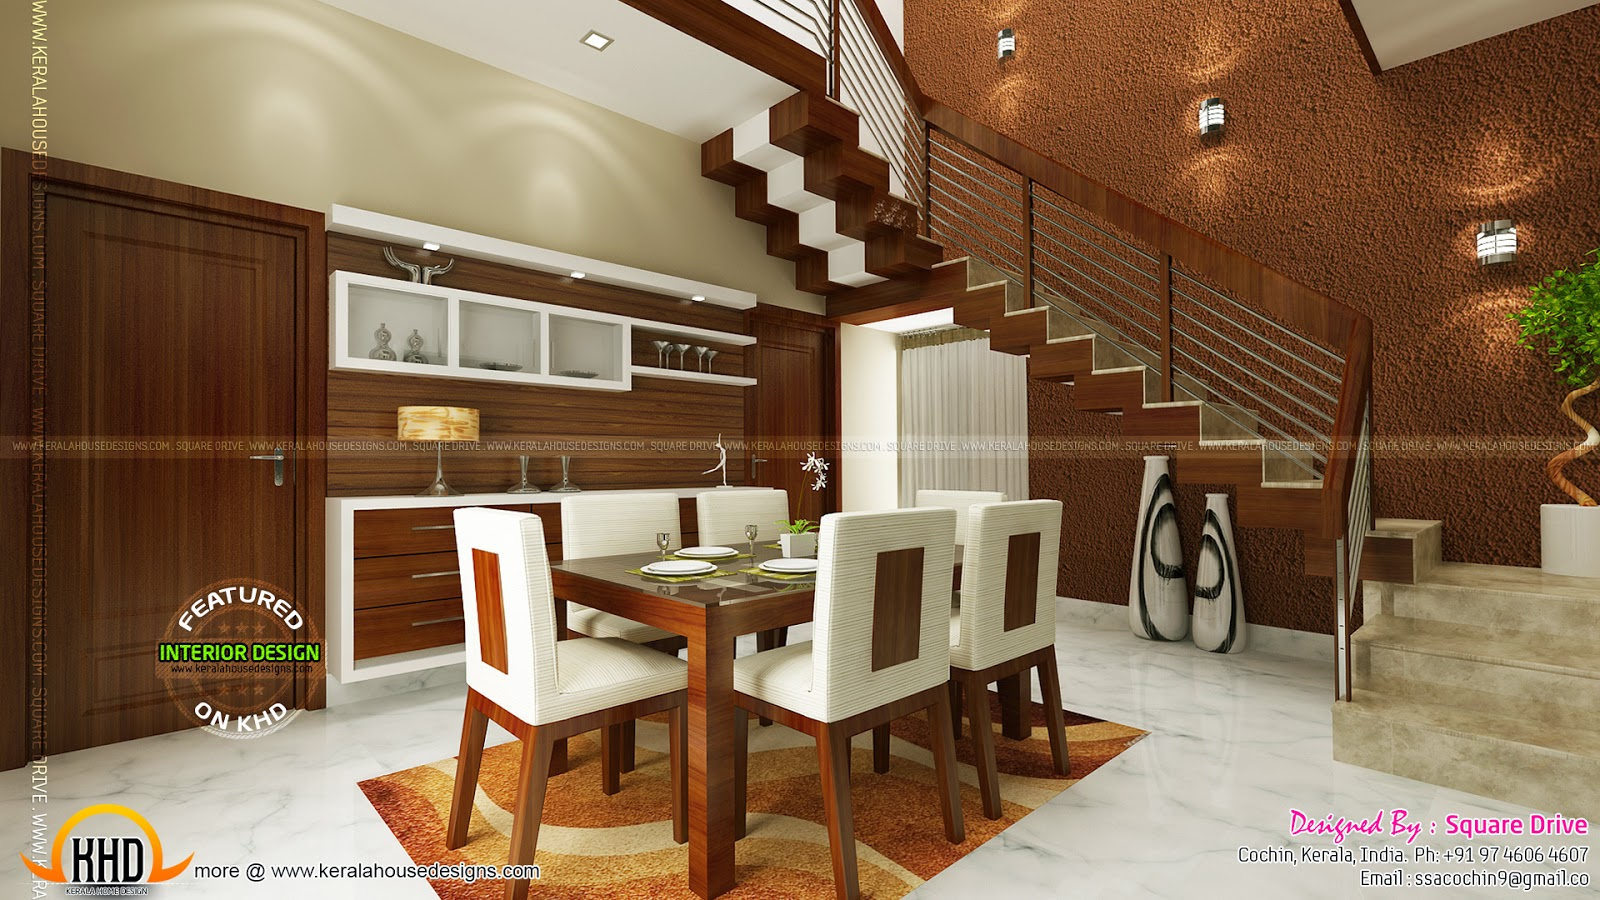 Cochin interior design kerala home design and floor plans for Dining room designs kerala